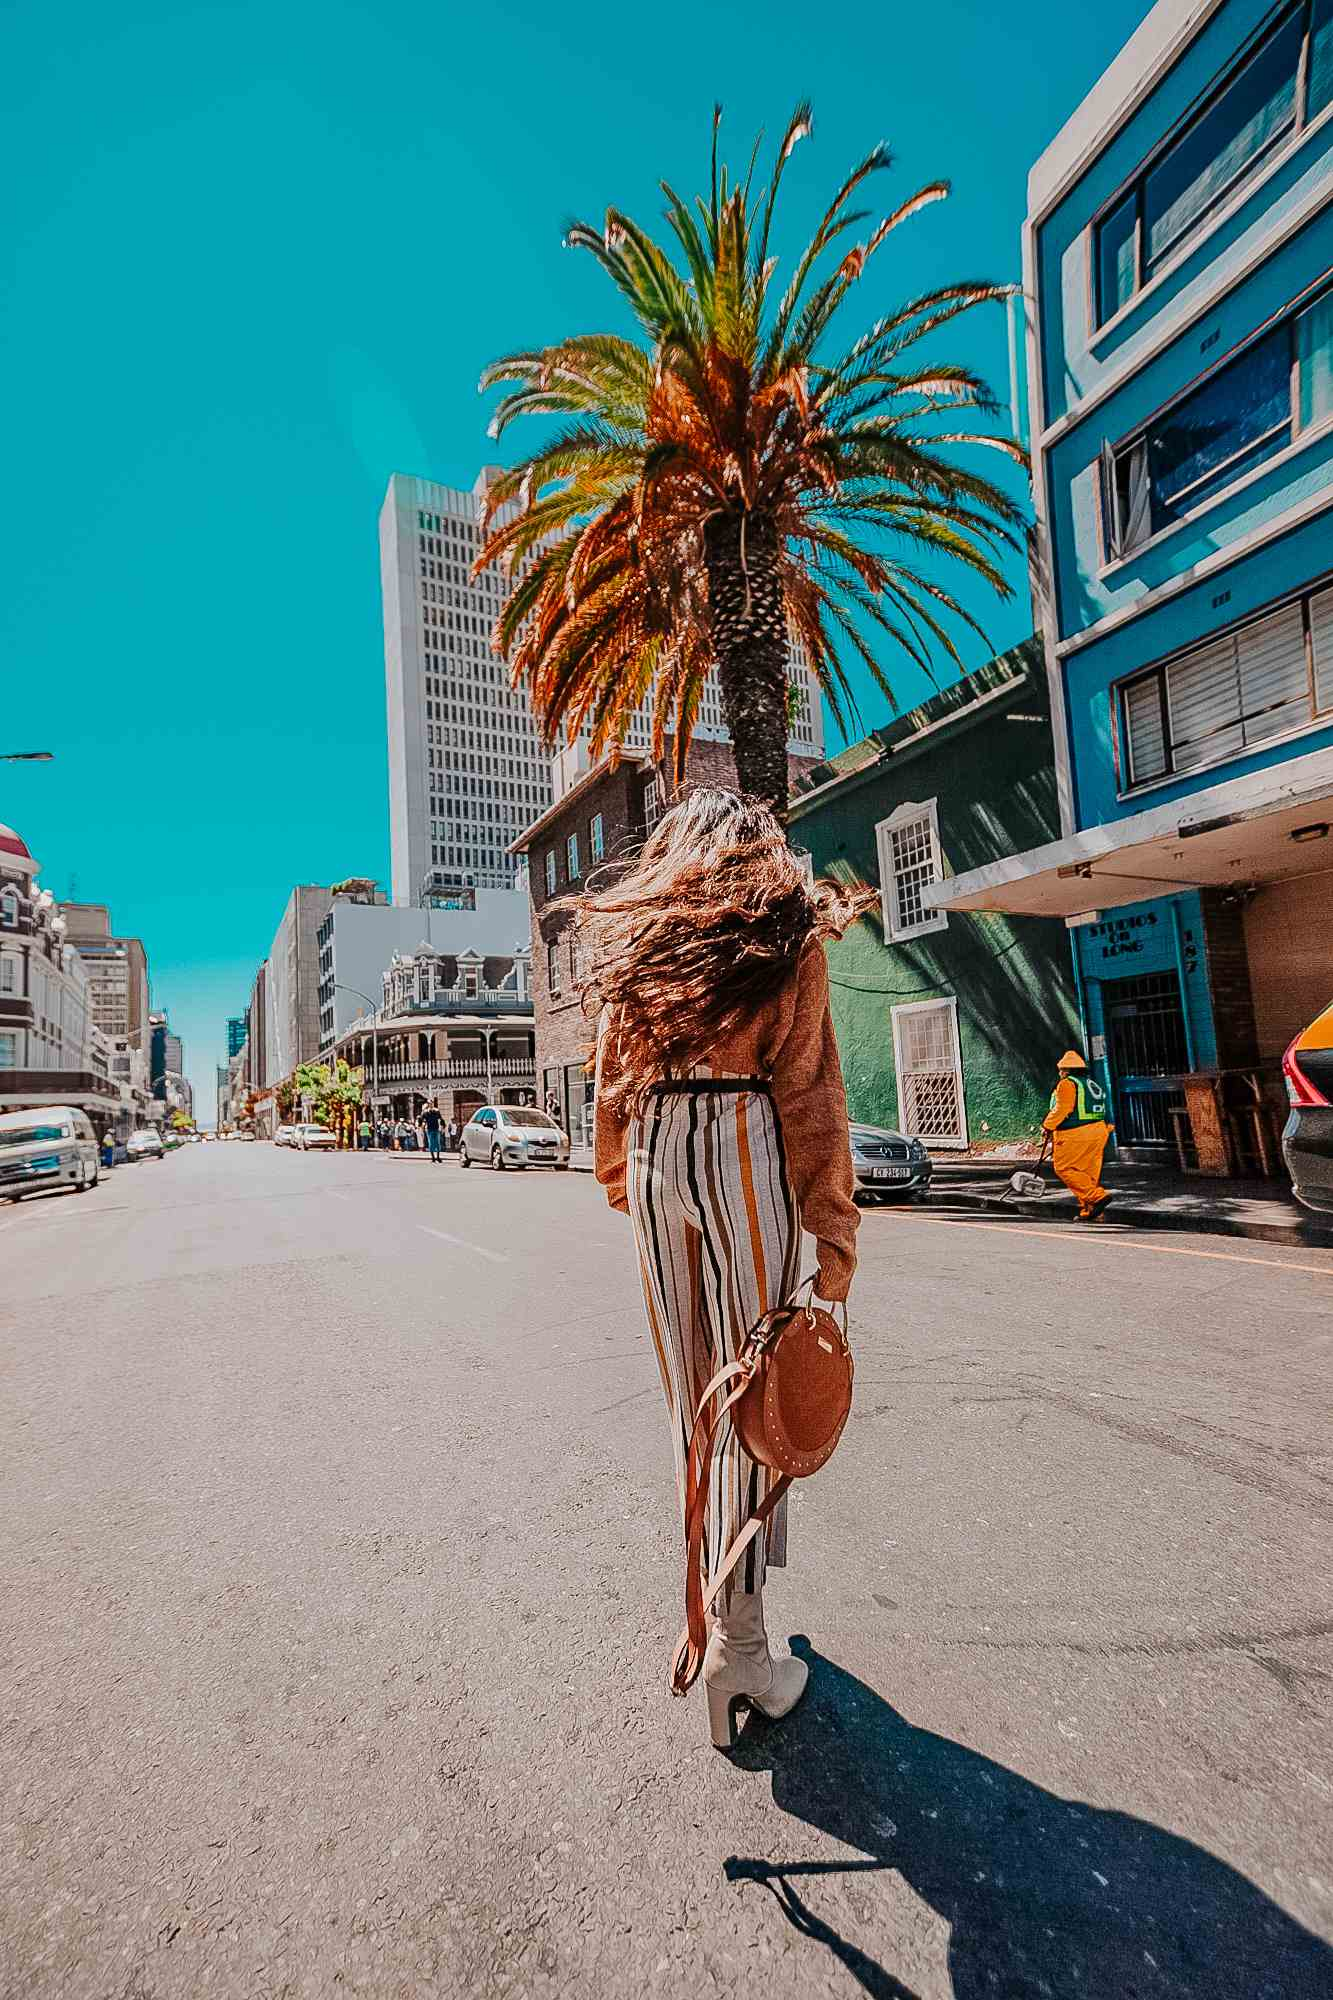 cape town, city, travel, travel blog, cape town travel diary, neha menghwani, indian blogger, travel blogger, cape point, long street, south africa, vero moda, shopping, table mountain, museum tour, wine tasting,